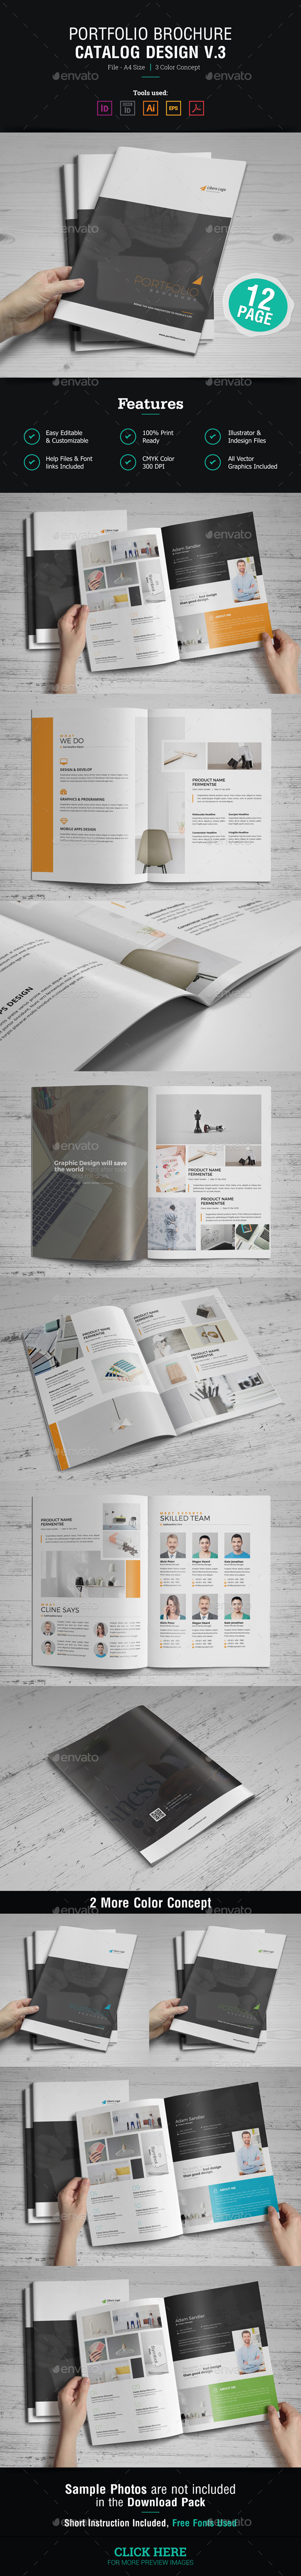 Portfolio Brochure Design v3 - Corporate Brochures